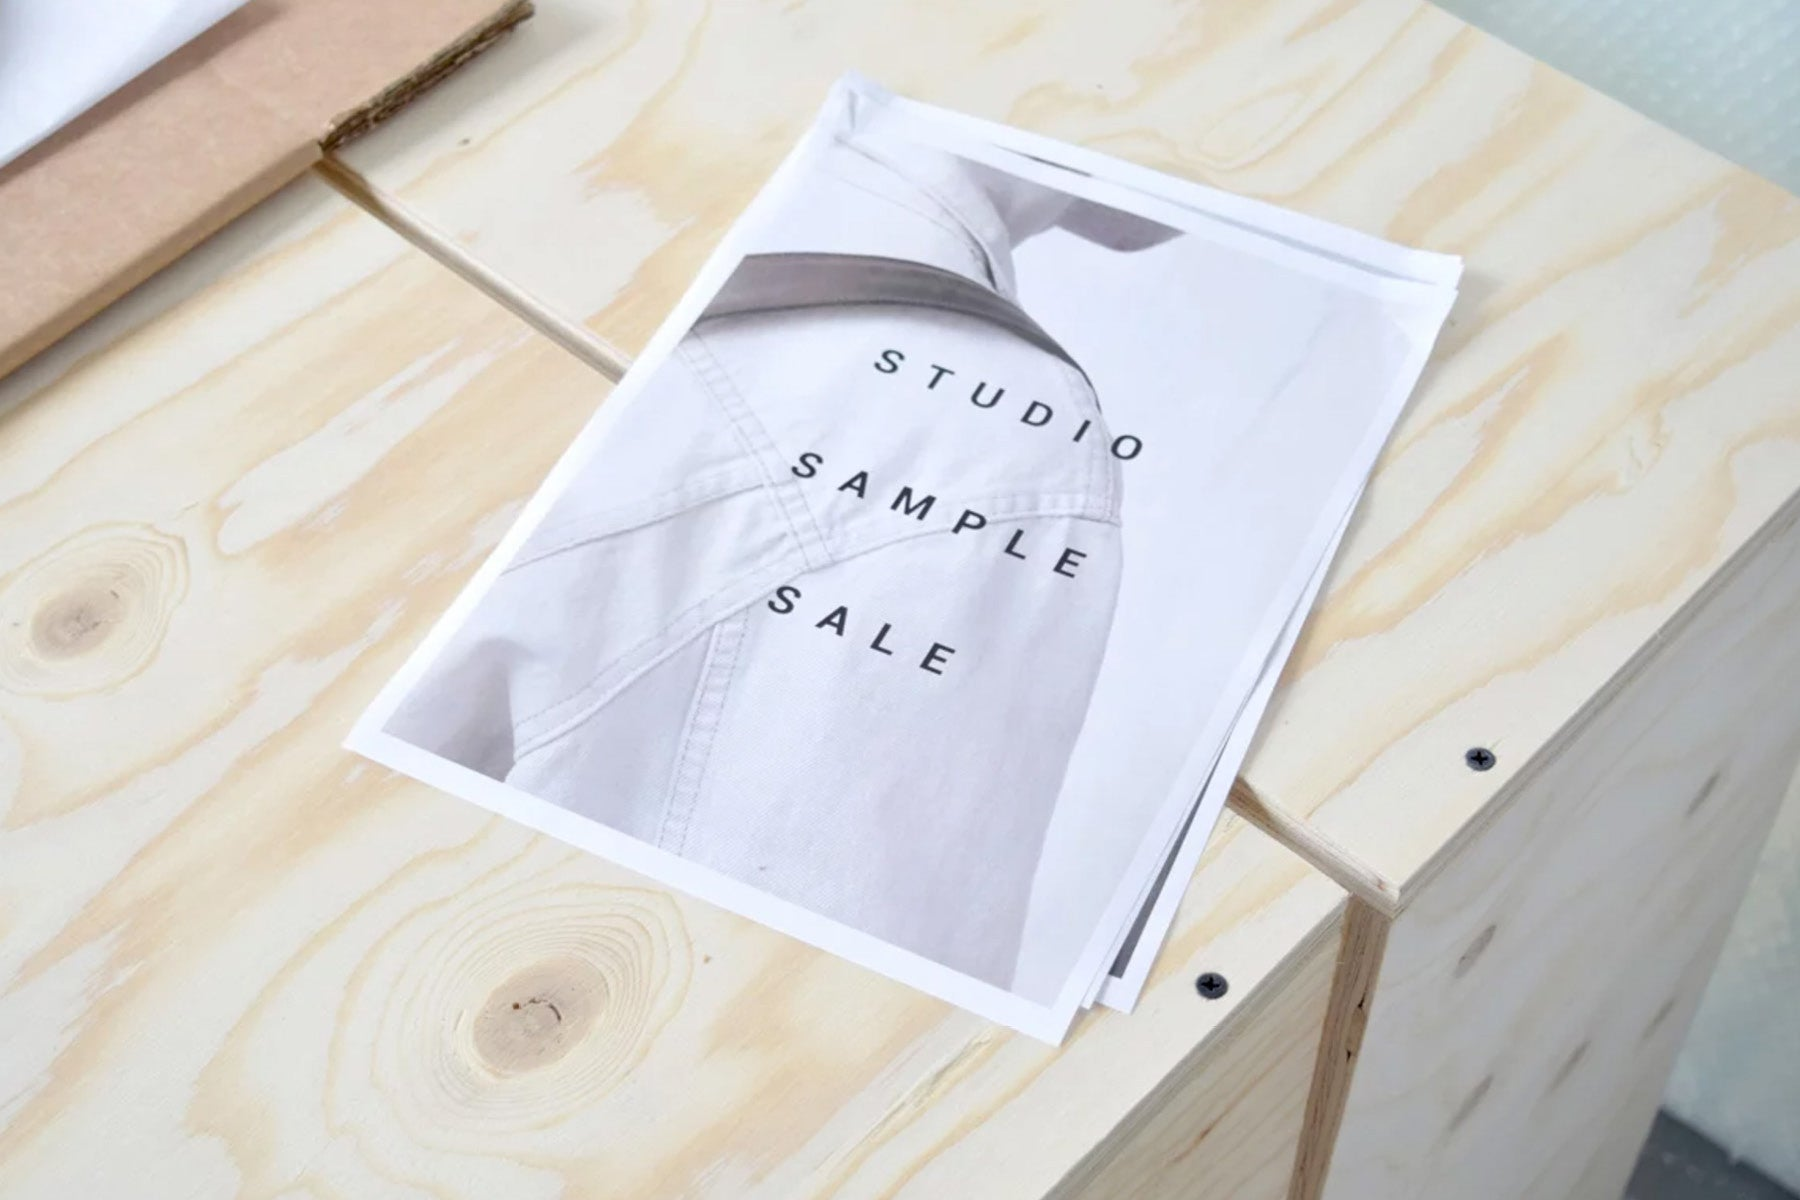 Event: Studio Sample Sale